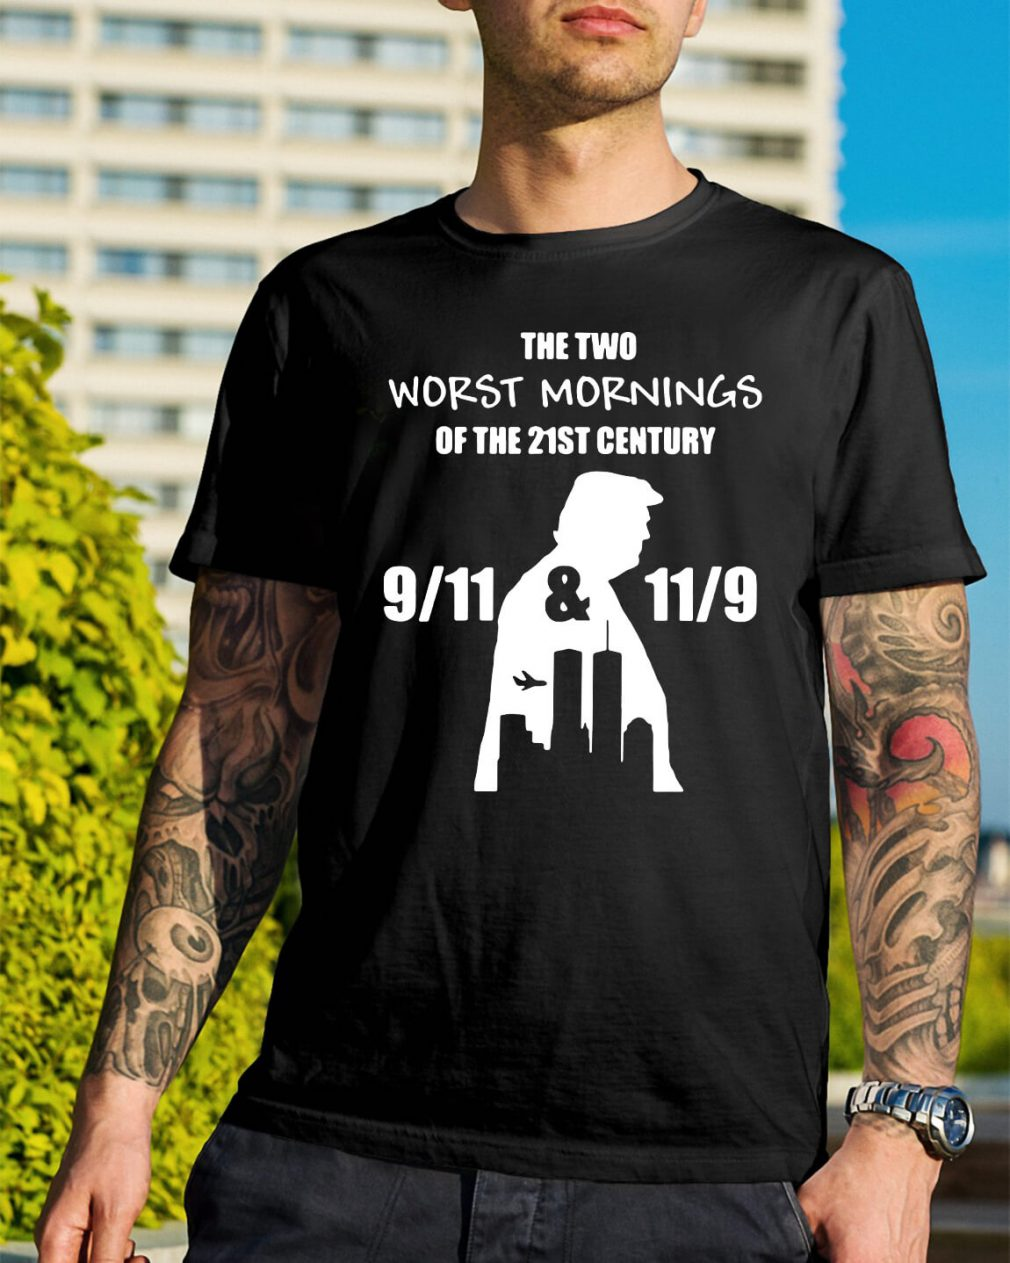 The two worst mornings of the 21st century 9/11 and 11/9 shirt